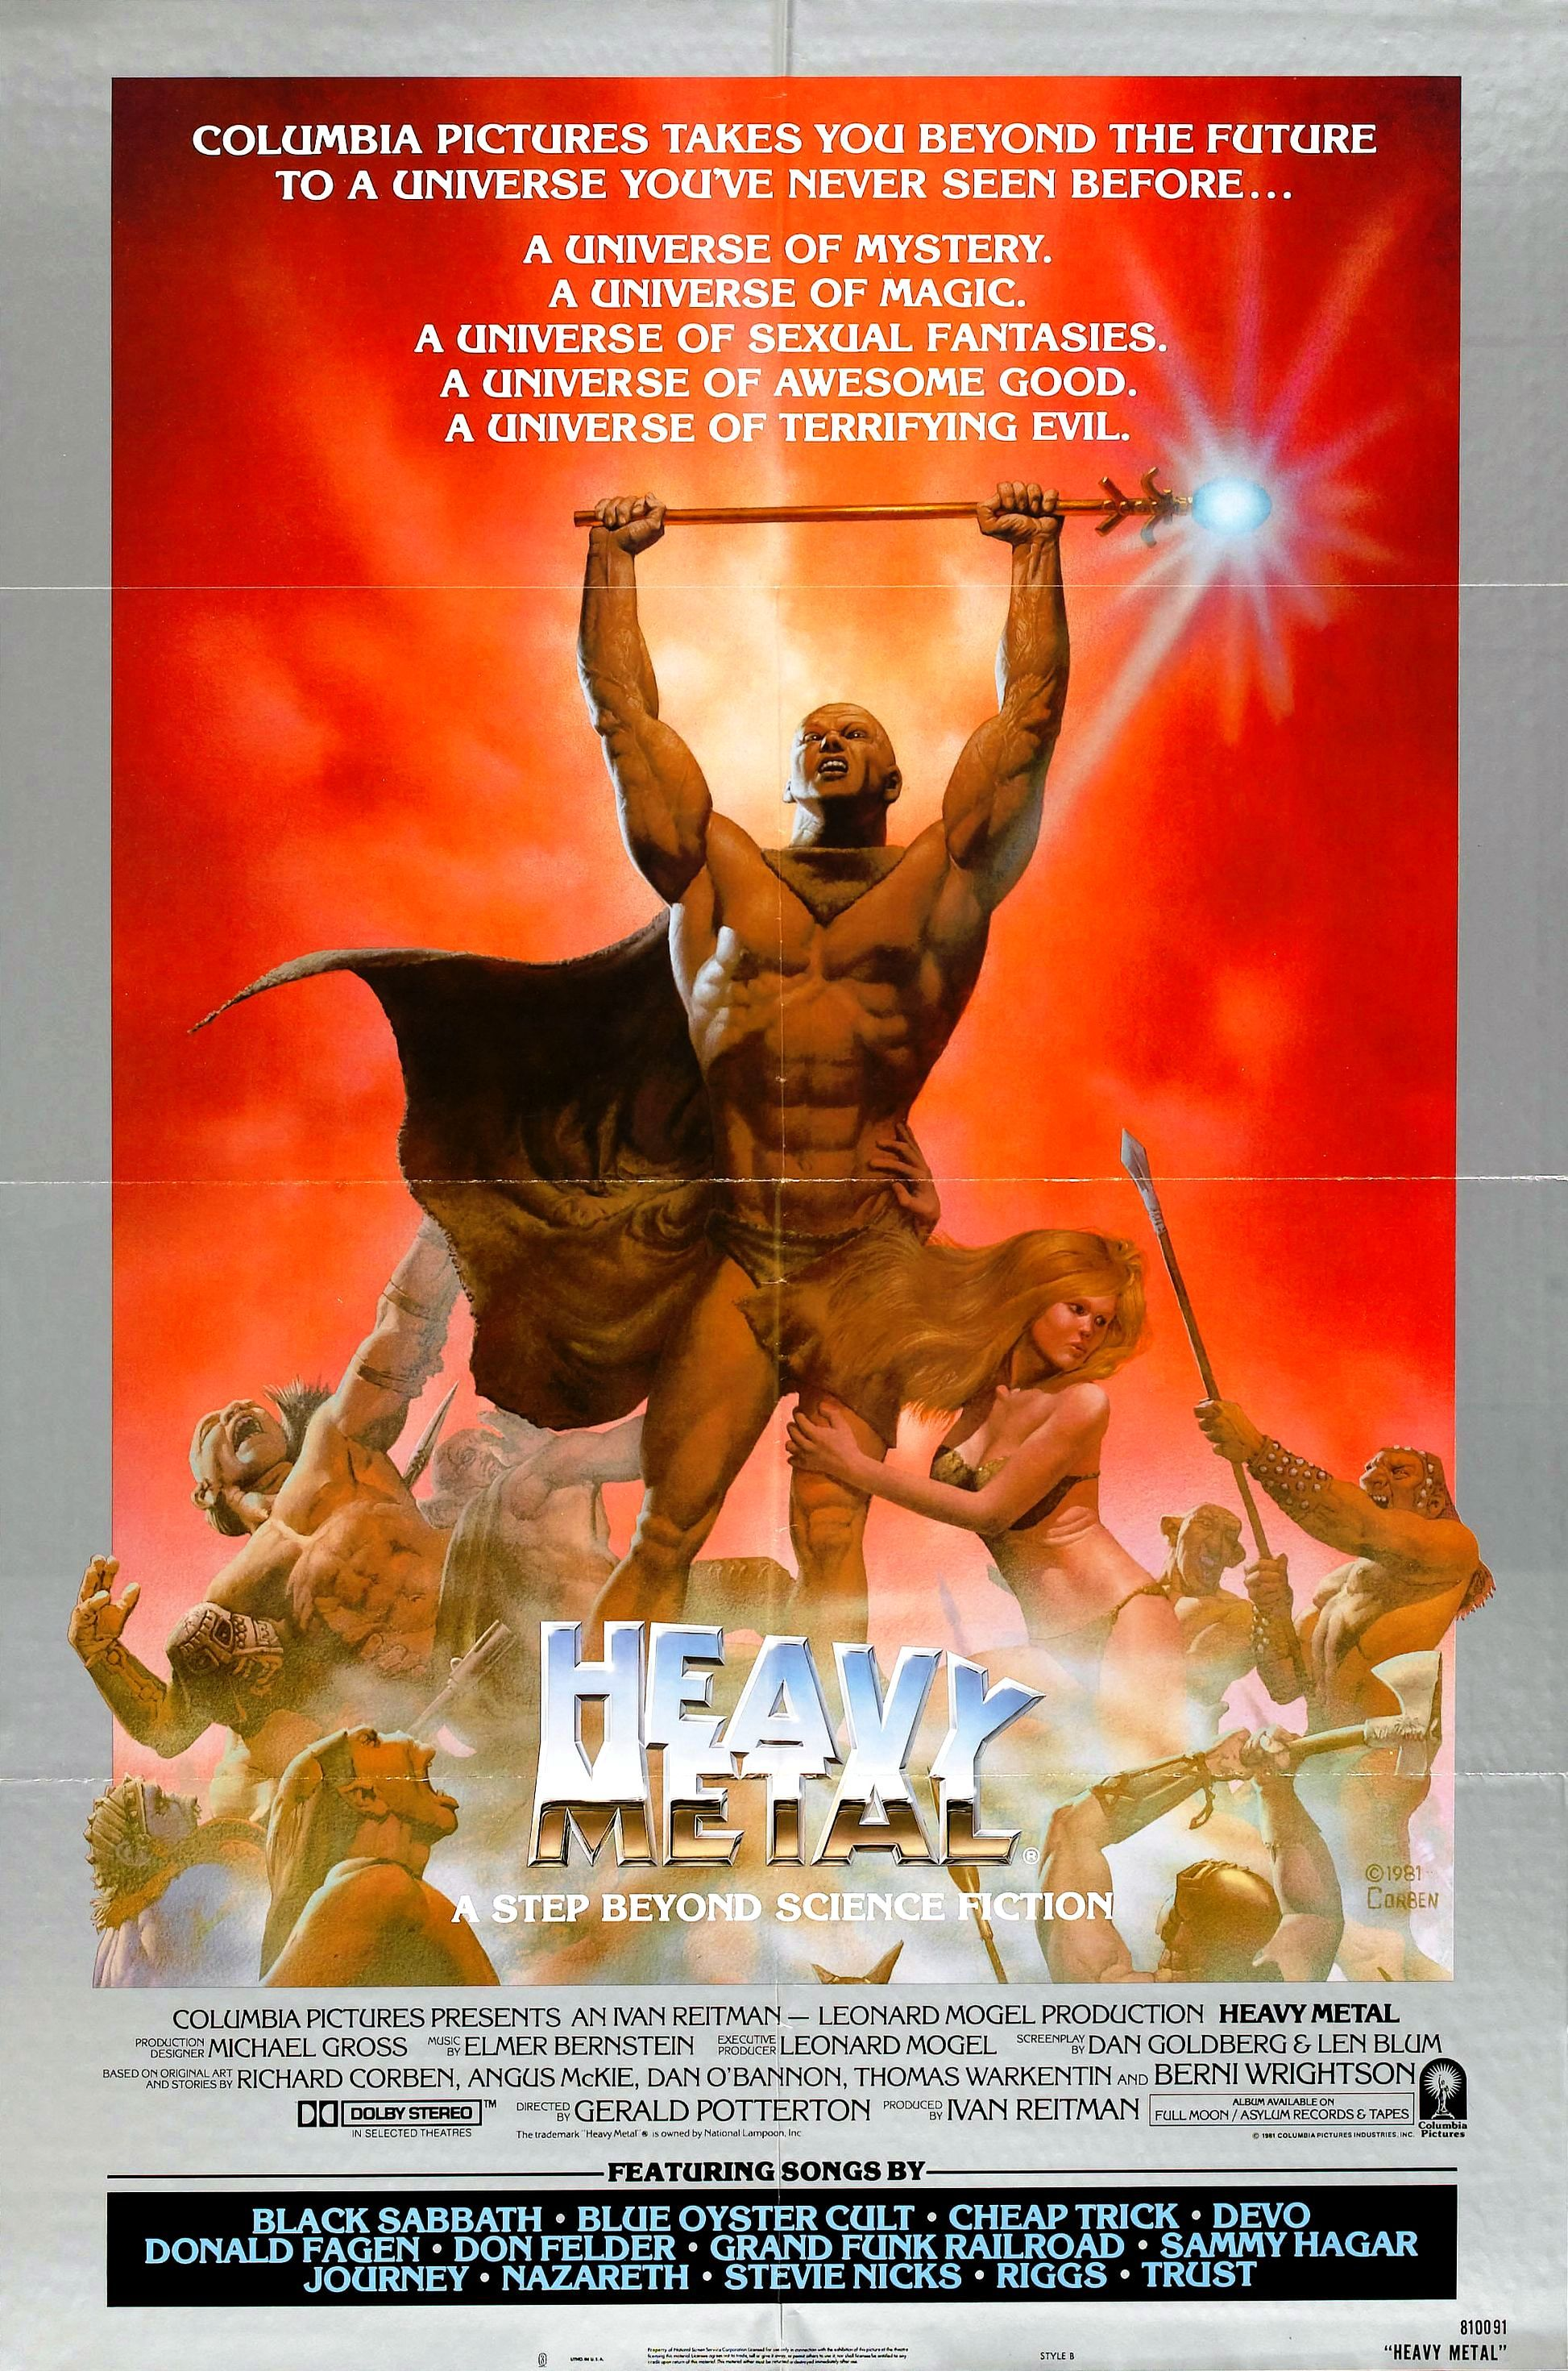 heavy metal movie posters stuff heavy metal 1981 heavy metal movie heavy metal art. Black Bedroom Furniture Sets. Home Design Ideas